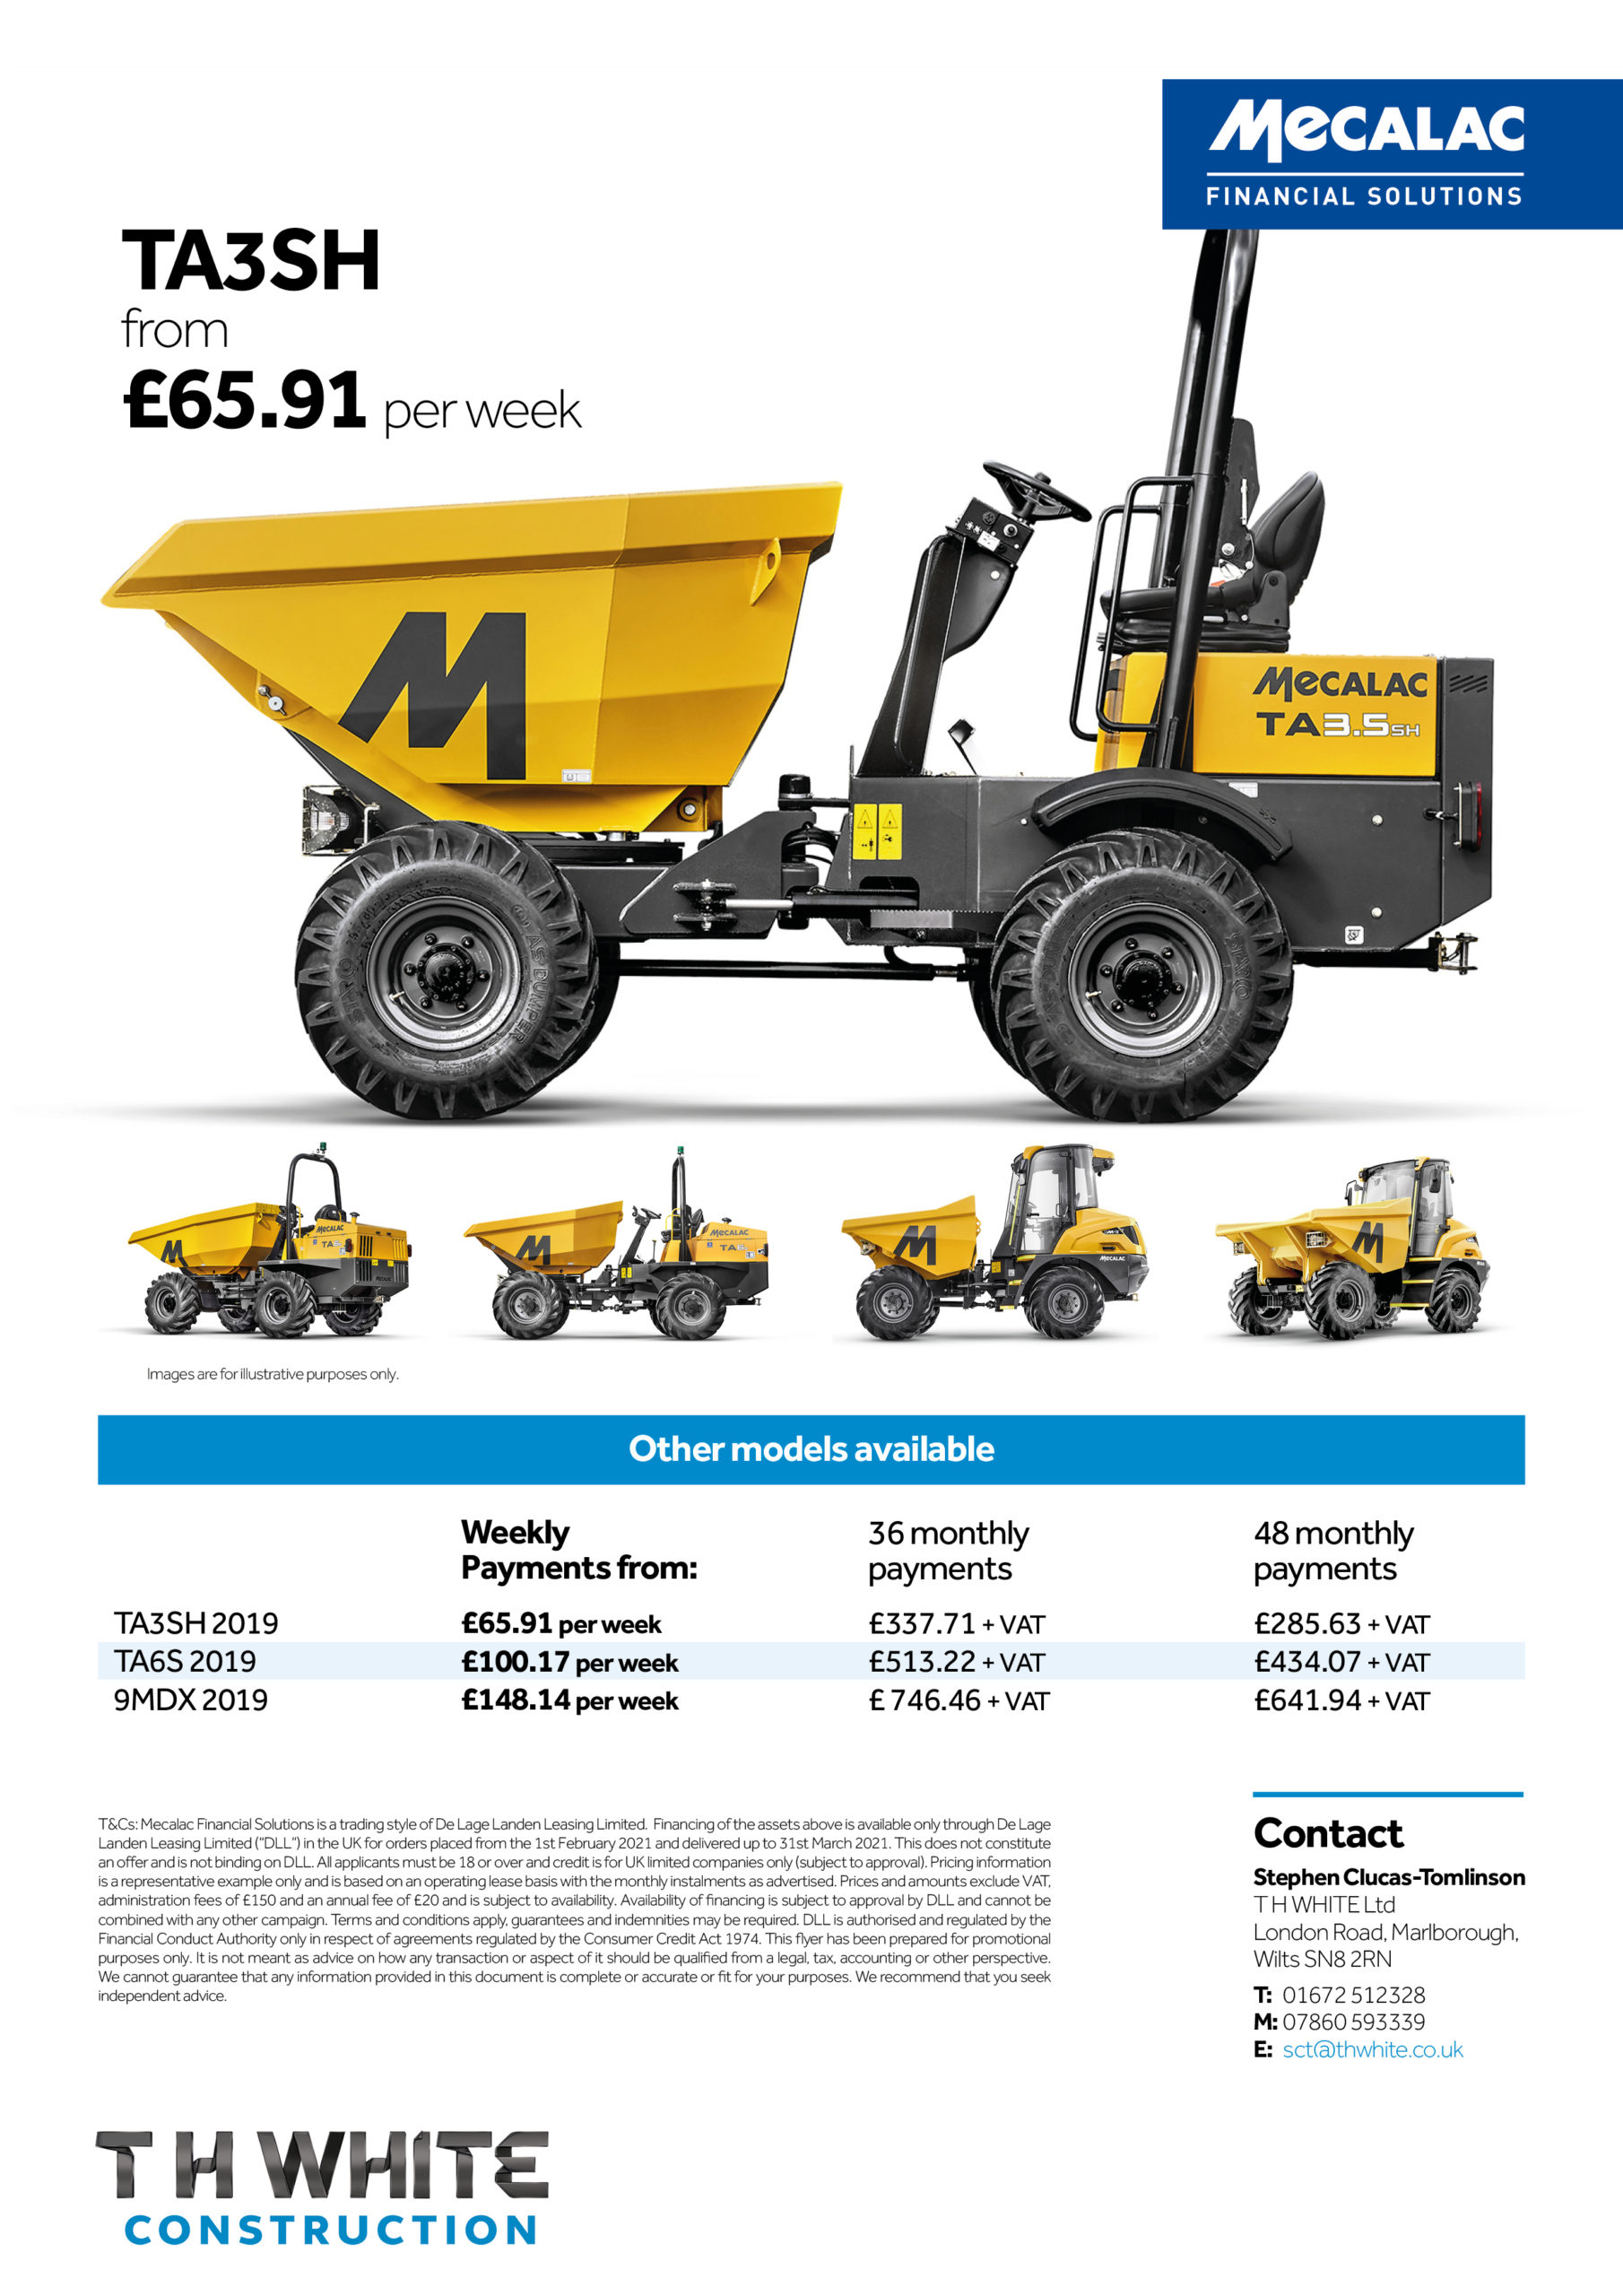 Mecalac Finance on selected models